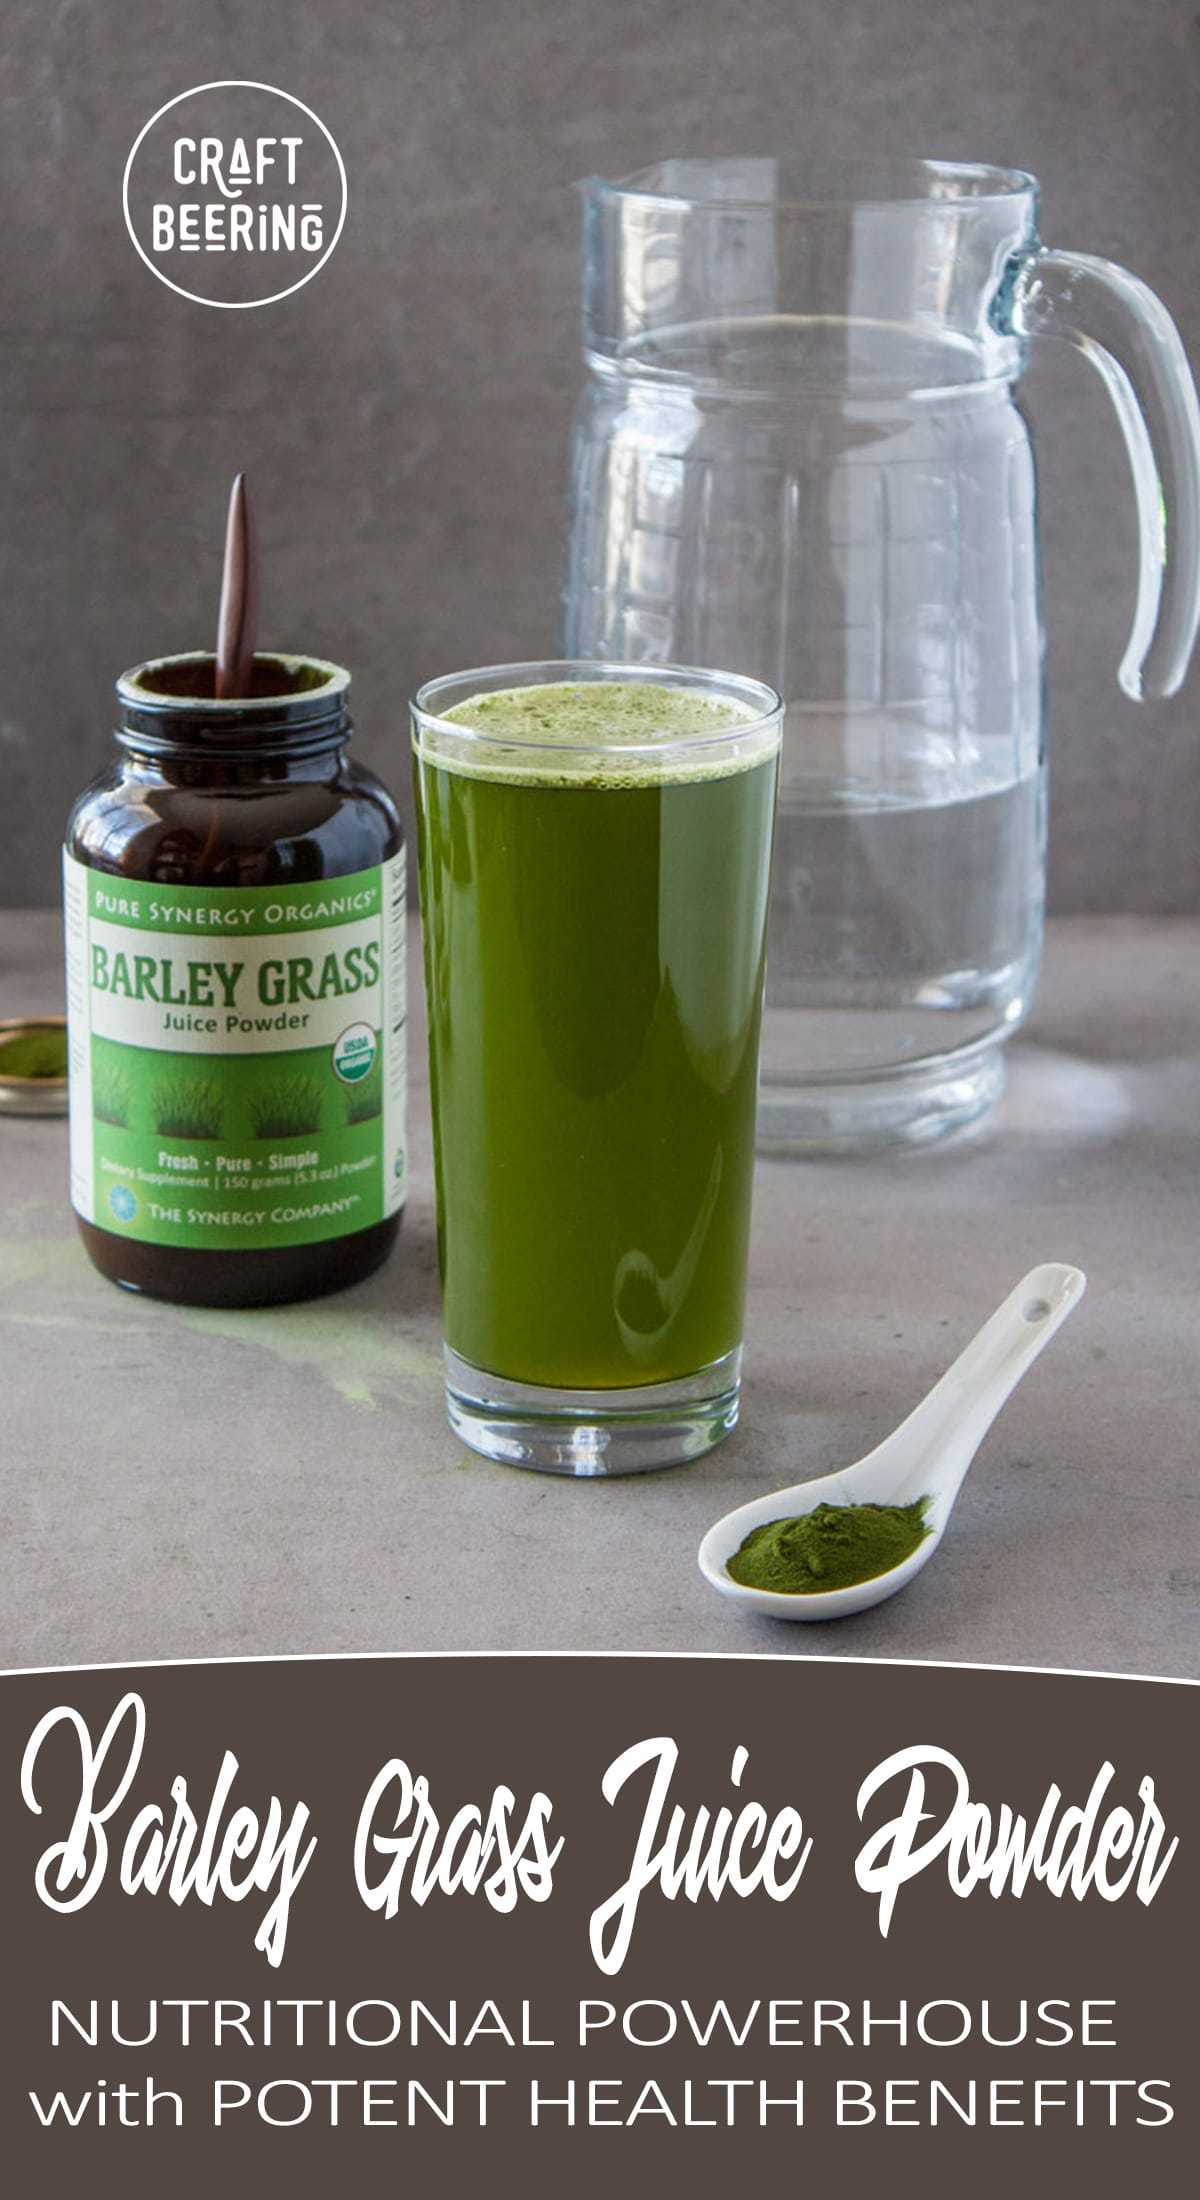 barley grass juice powder health benefits (there are many)